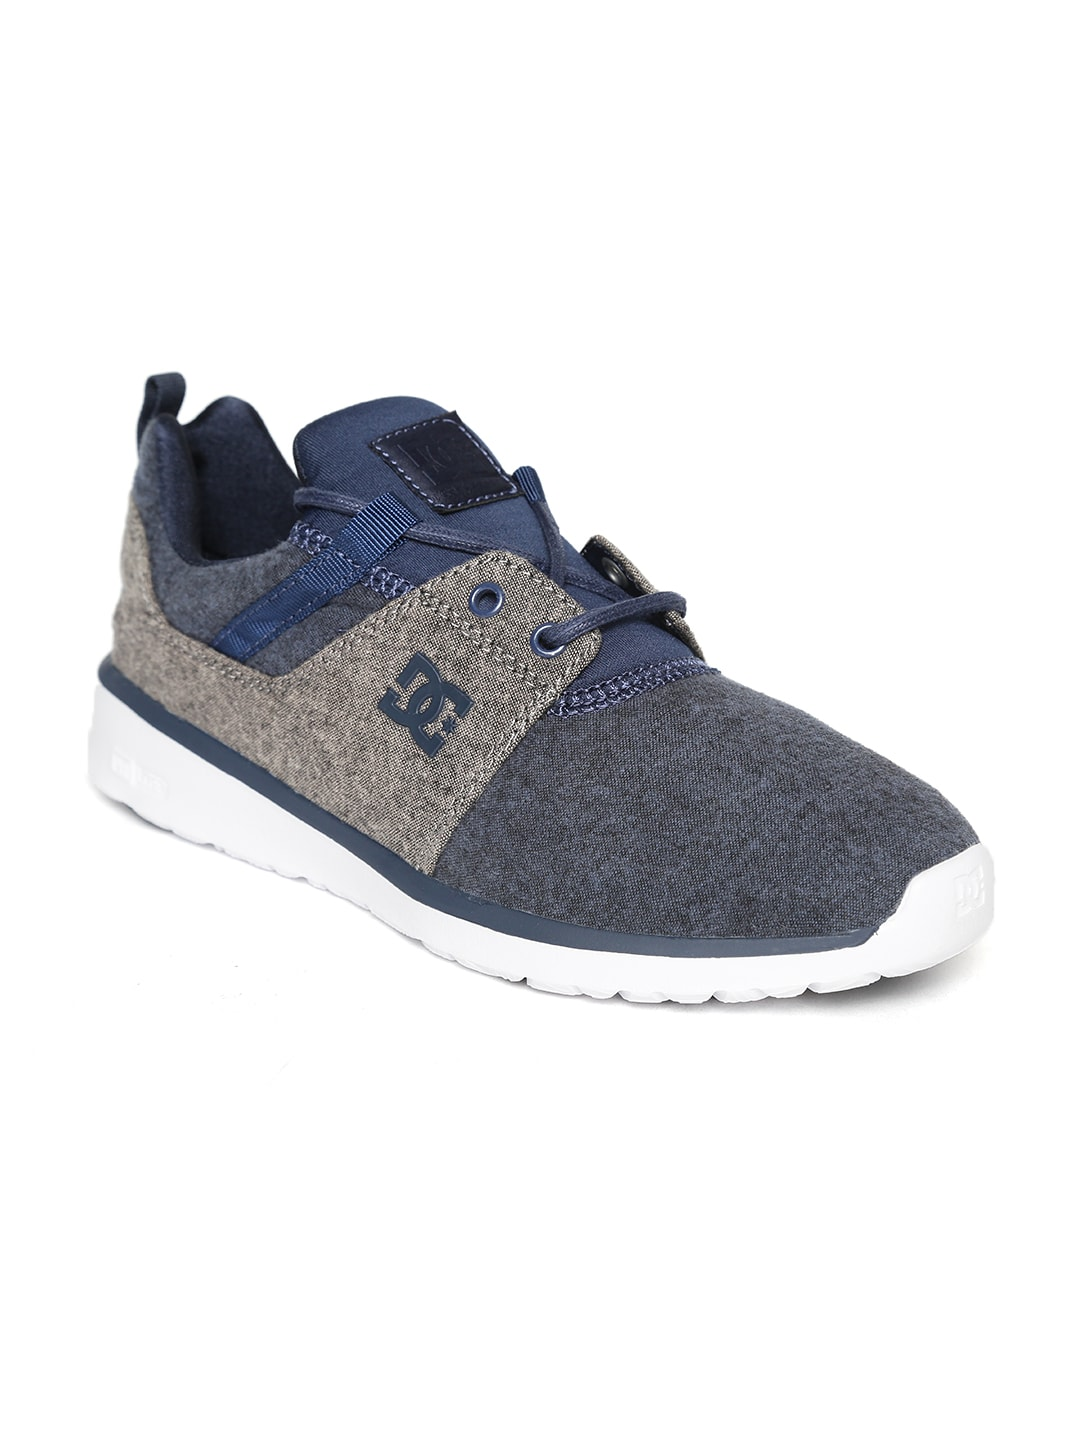 f28a24b0d4a3 DC Men Navy Blue   Charcoal Grey Colourblocked Sneakers